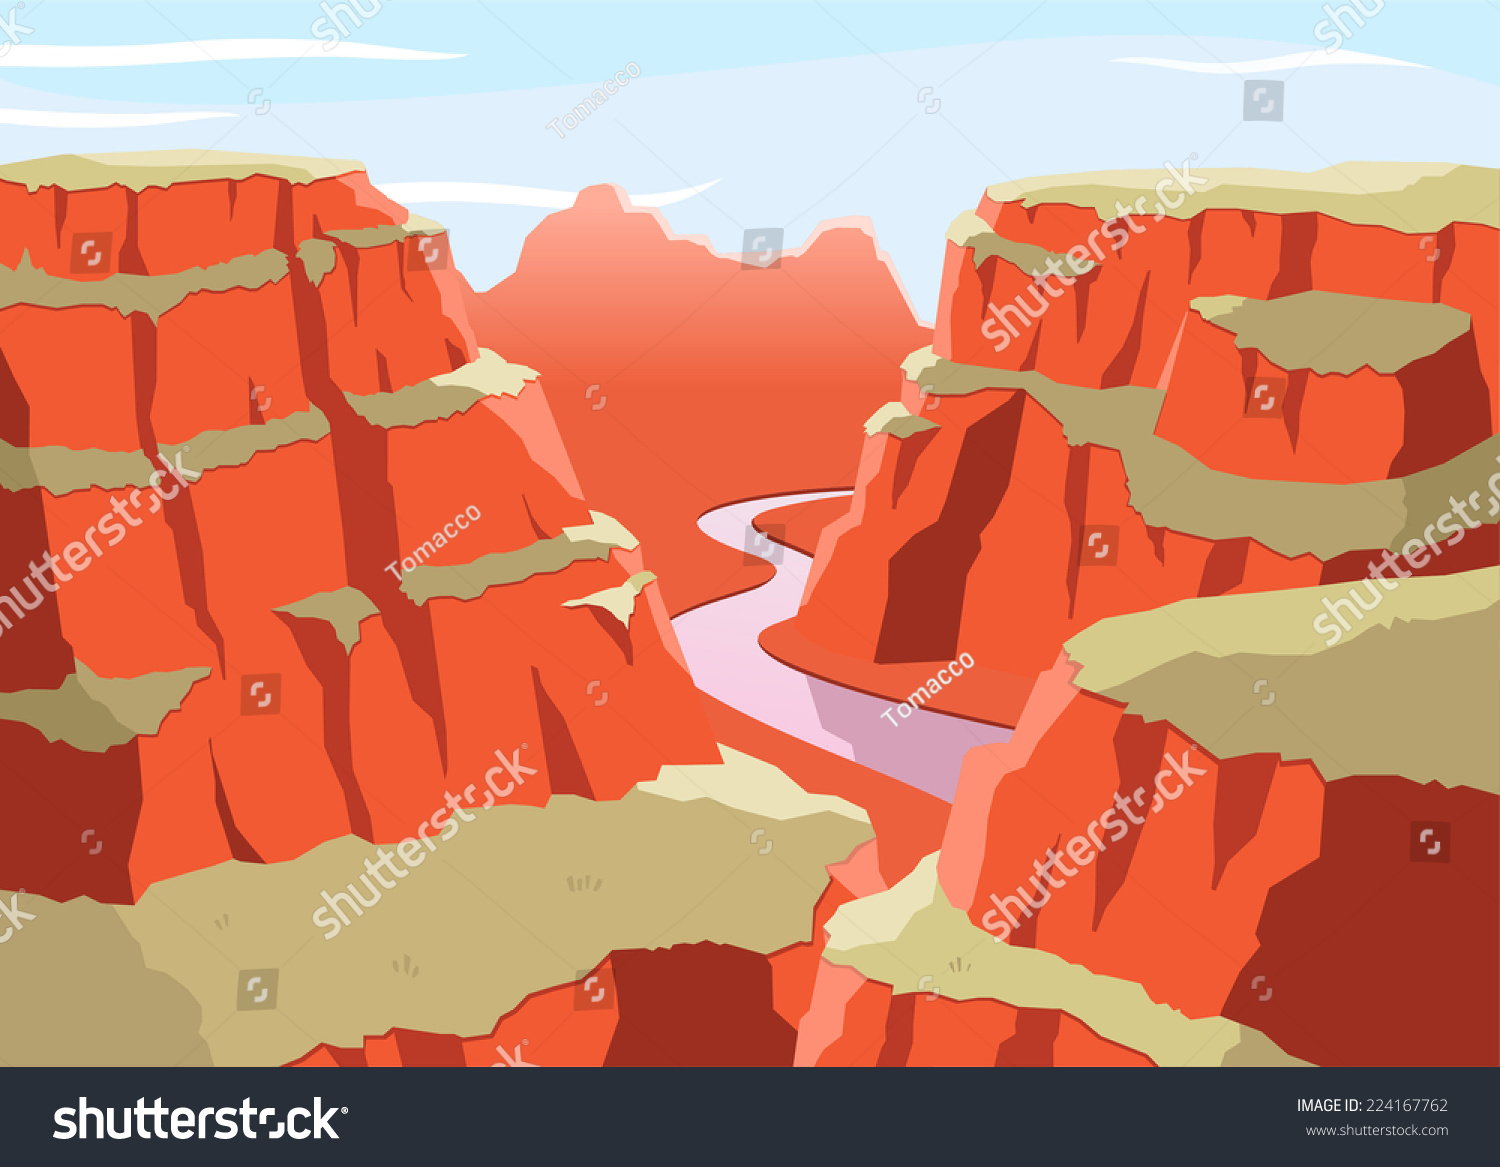 hight resolution of grand canyon national park arizona united states colorado plateau seven natural wonders vector illustration cartoon